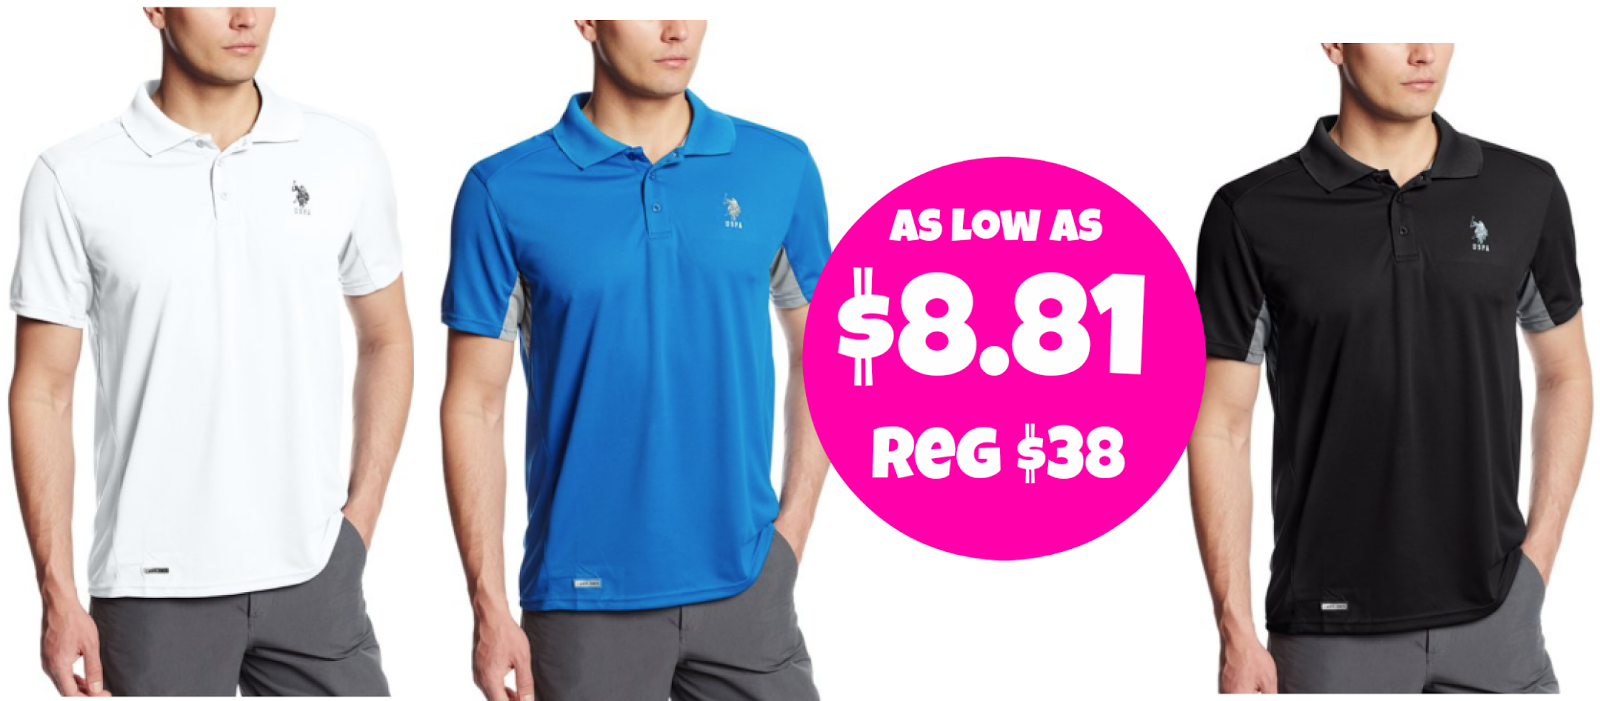 http://www.thebinderladies.com/2015/02/amazon-mens-us-polo-assn-mens-mesh.html#.VNLA1ofduyM